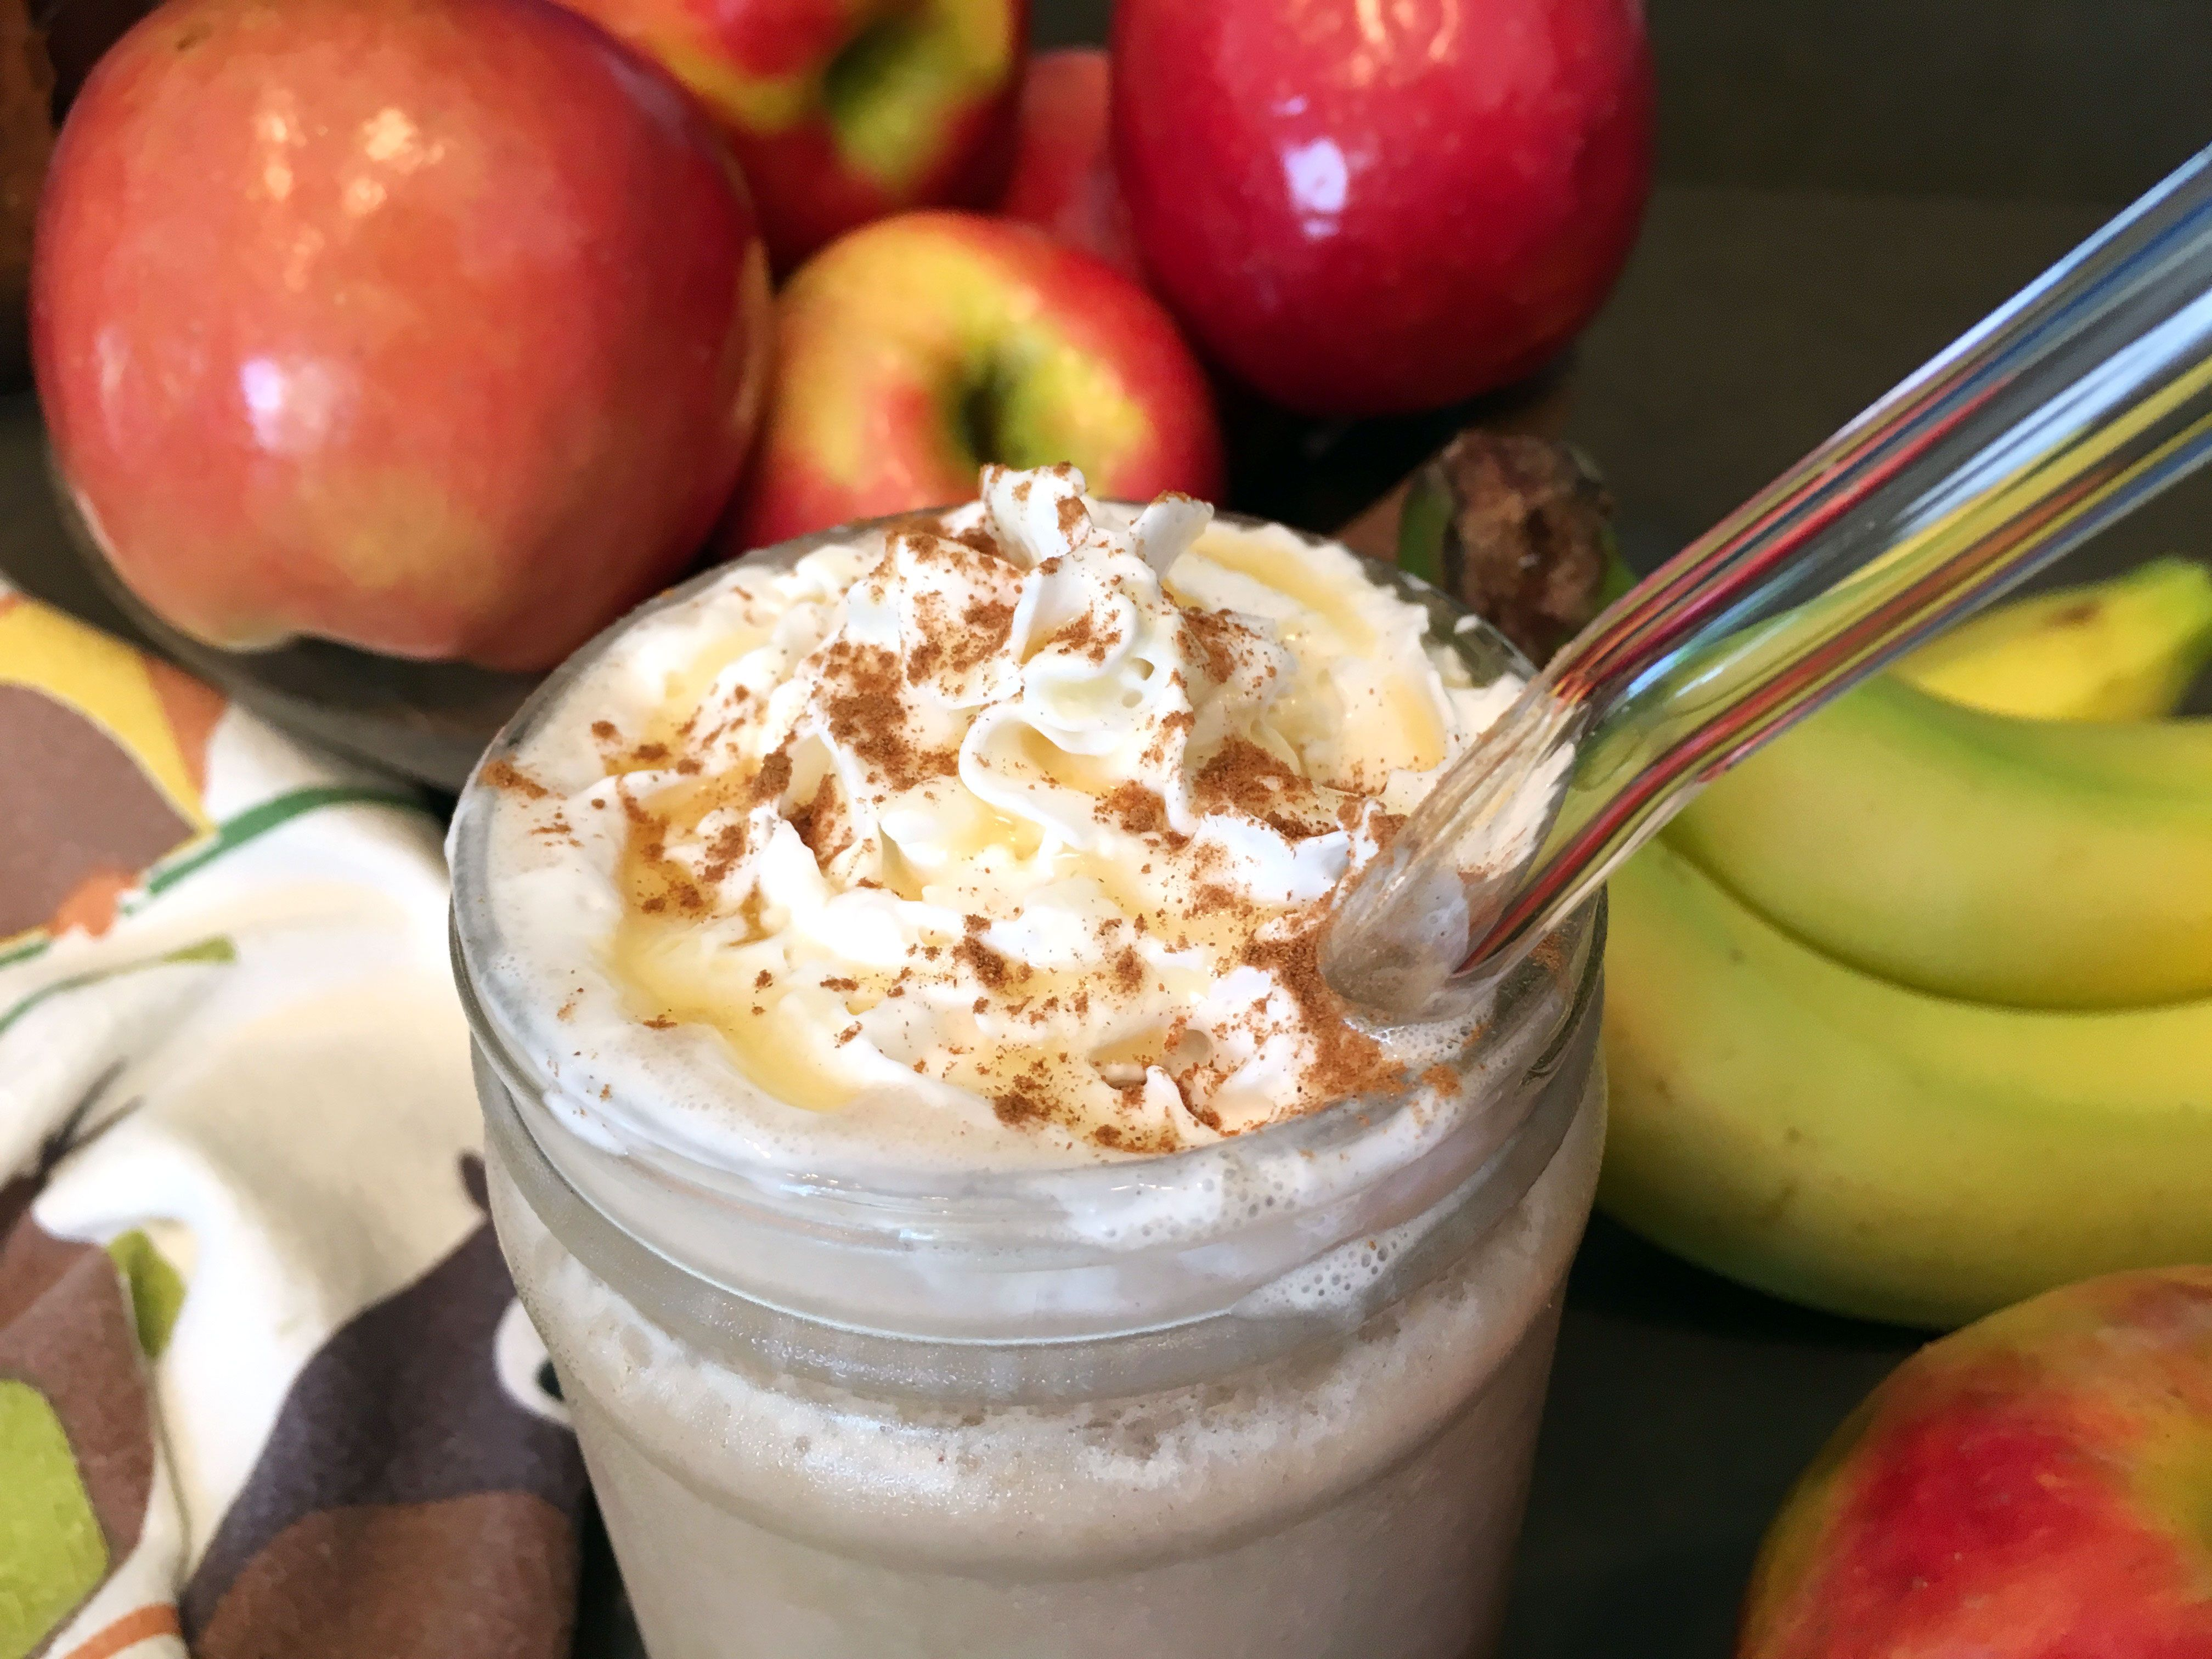 Home / Healthy Recipes / Smoothies / Fall Smoothie Collection   JessieBeeMine